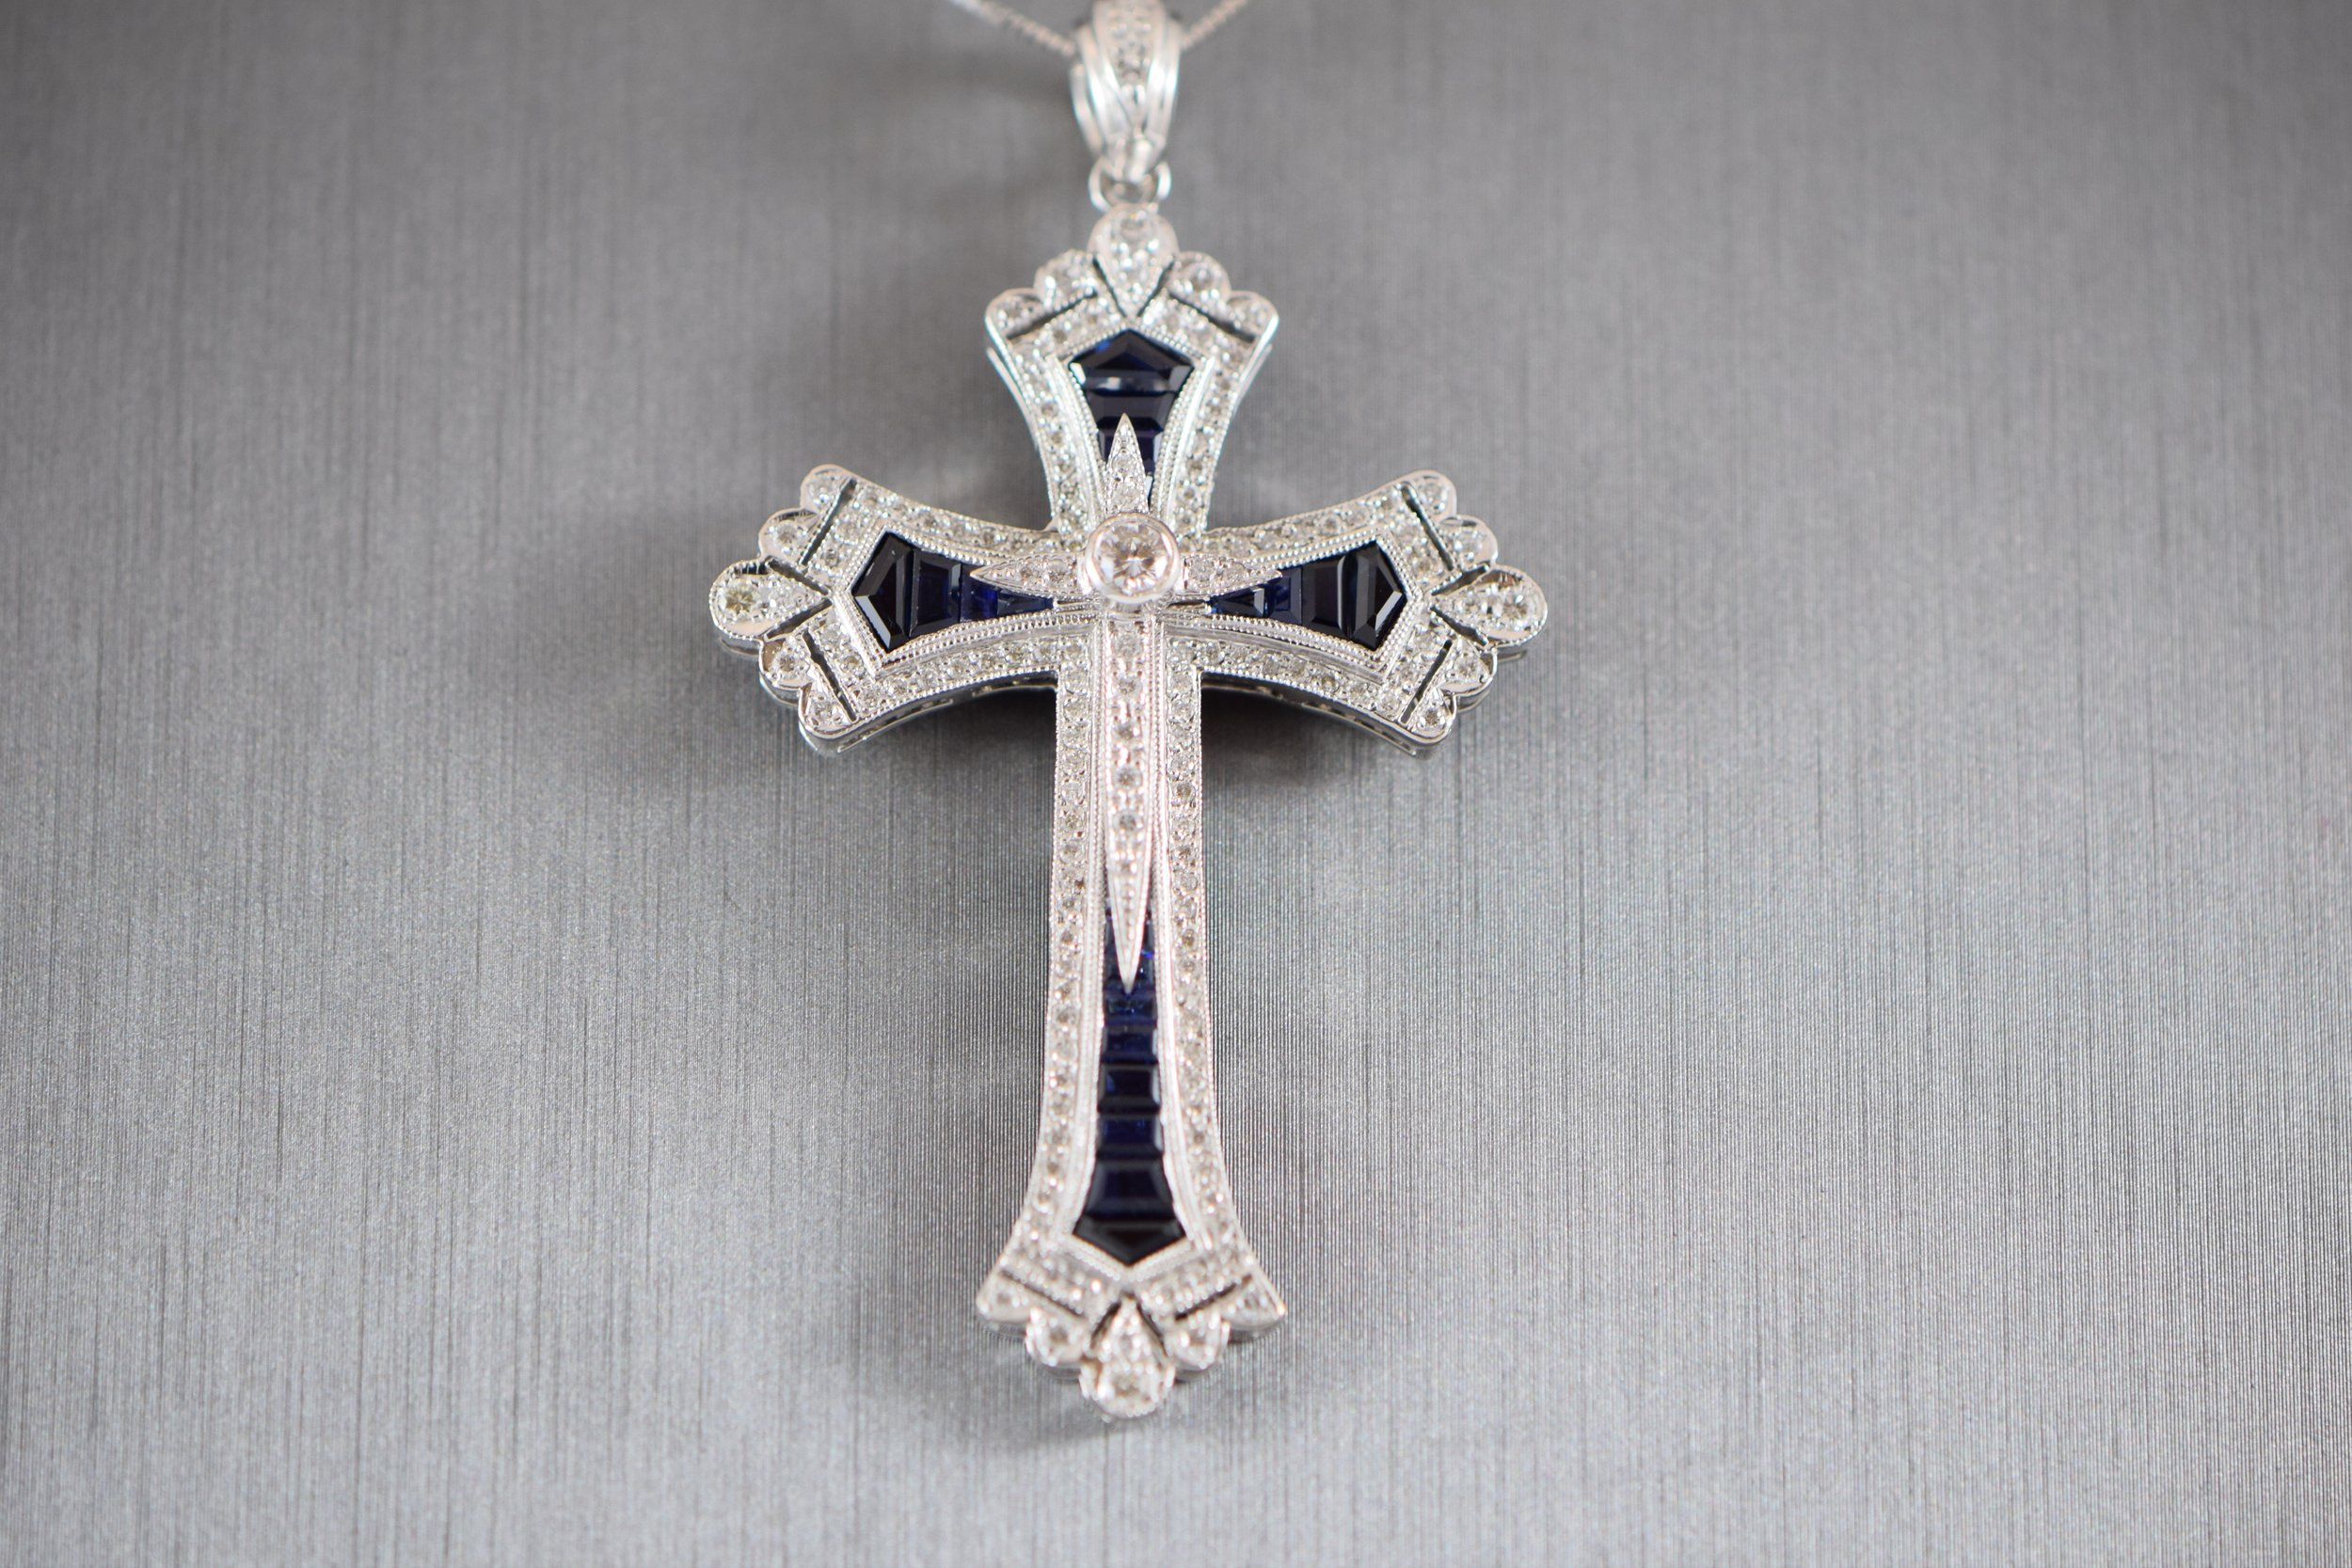 Sapphire and diamond cross pendant